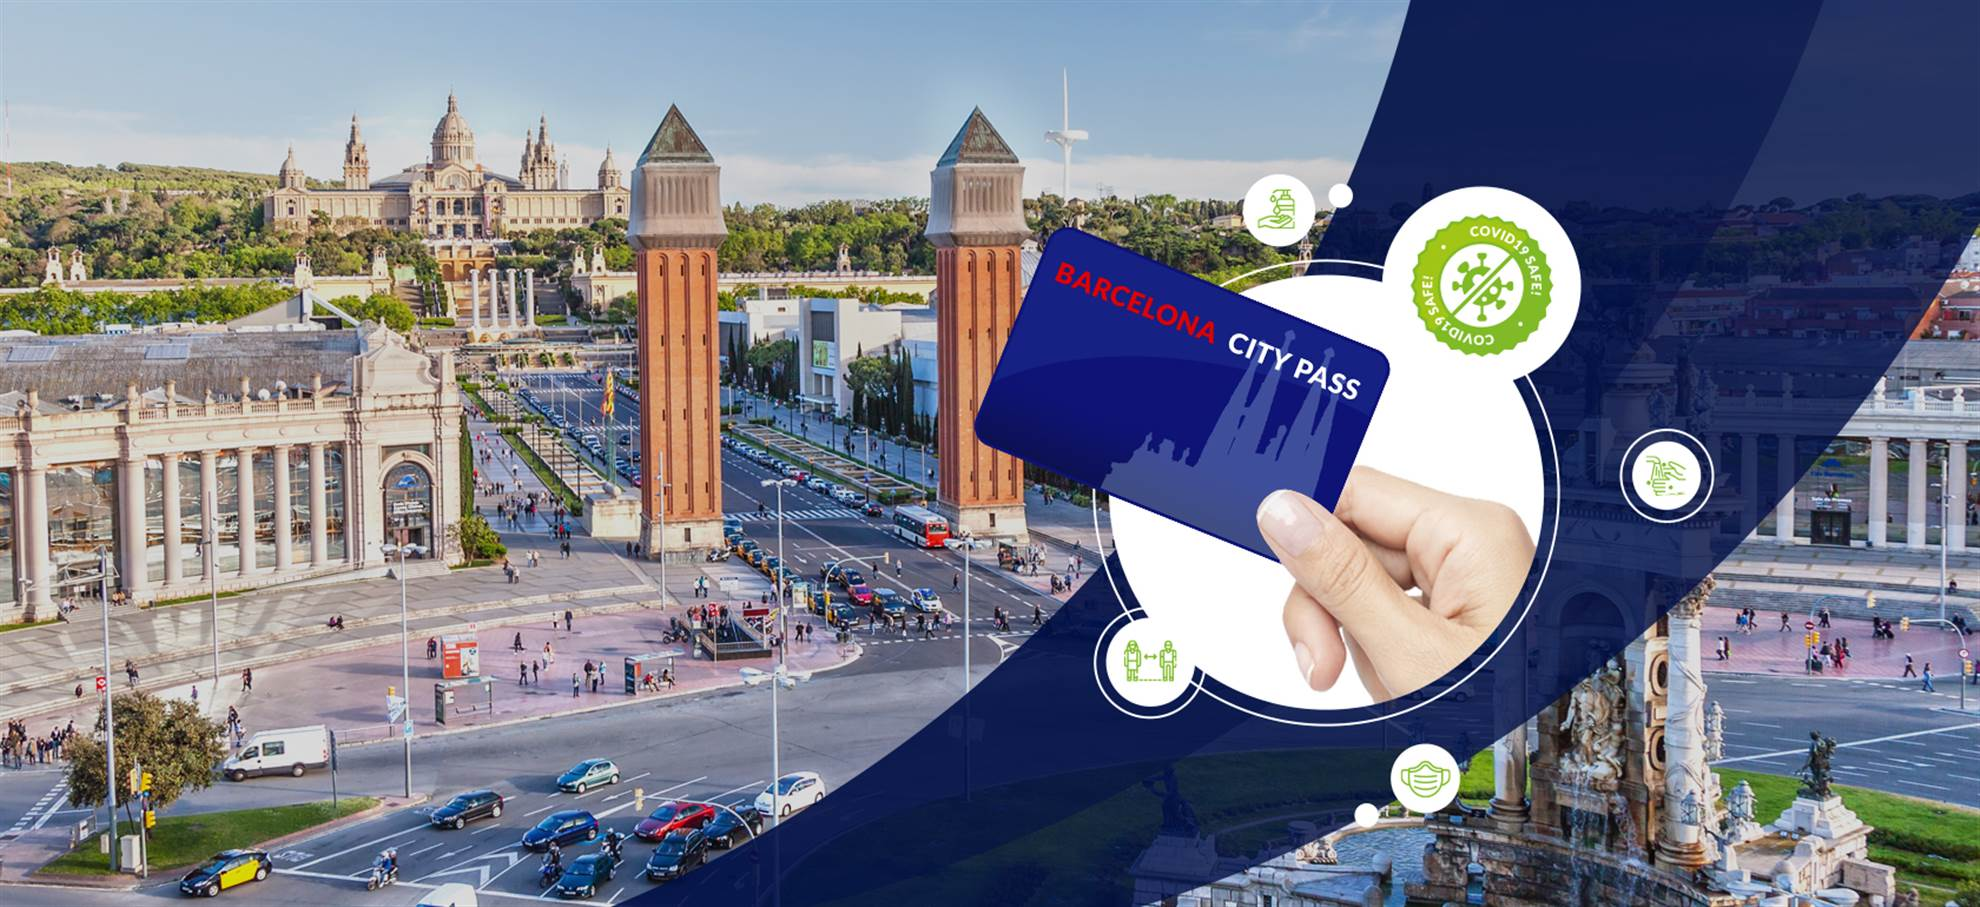 Barcelona City Pass (Corona Safe)